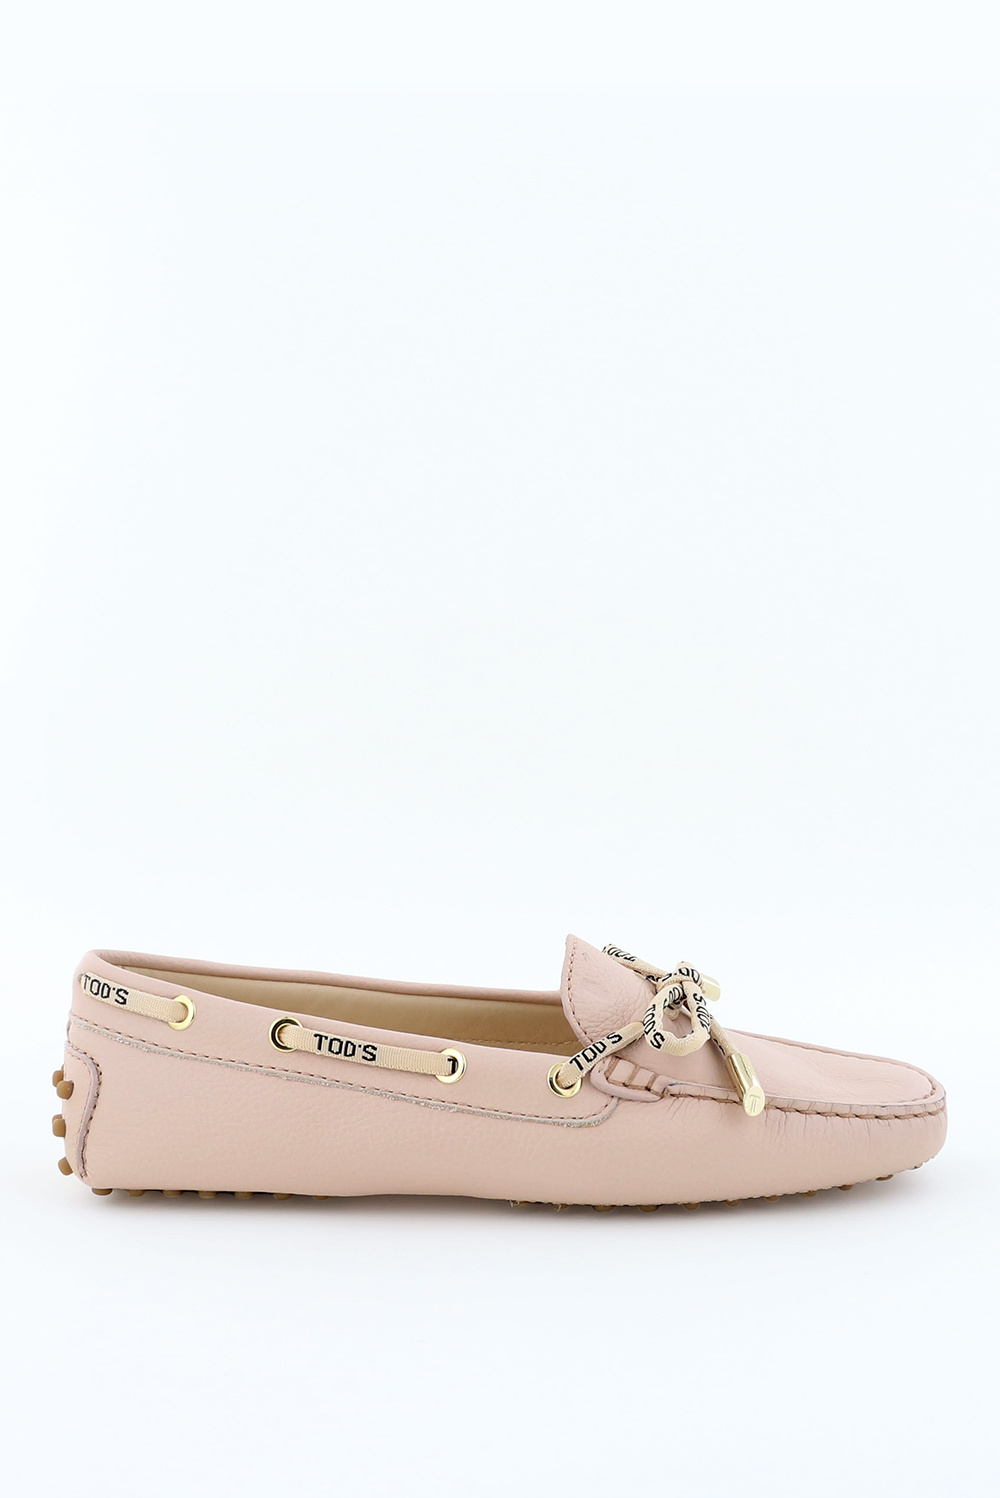 Tods loafers XXW0FW0DB305J1M030 nude